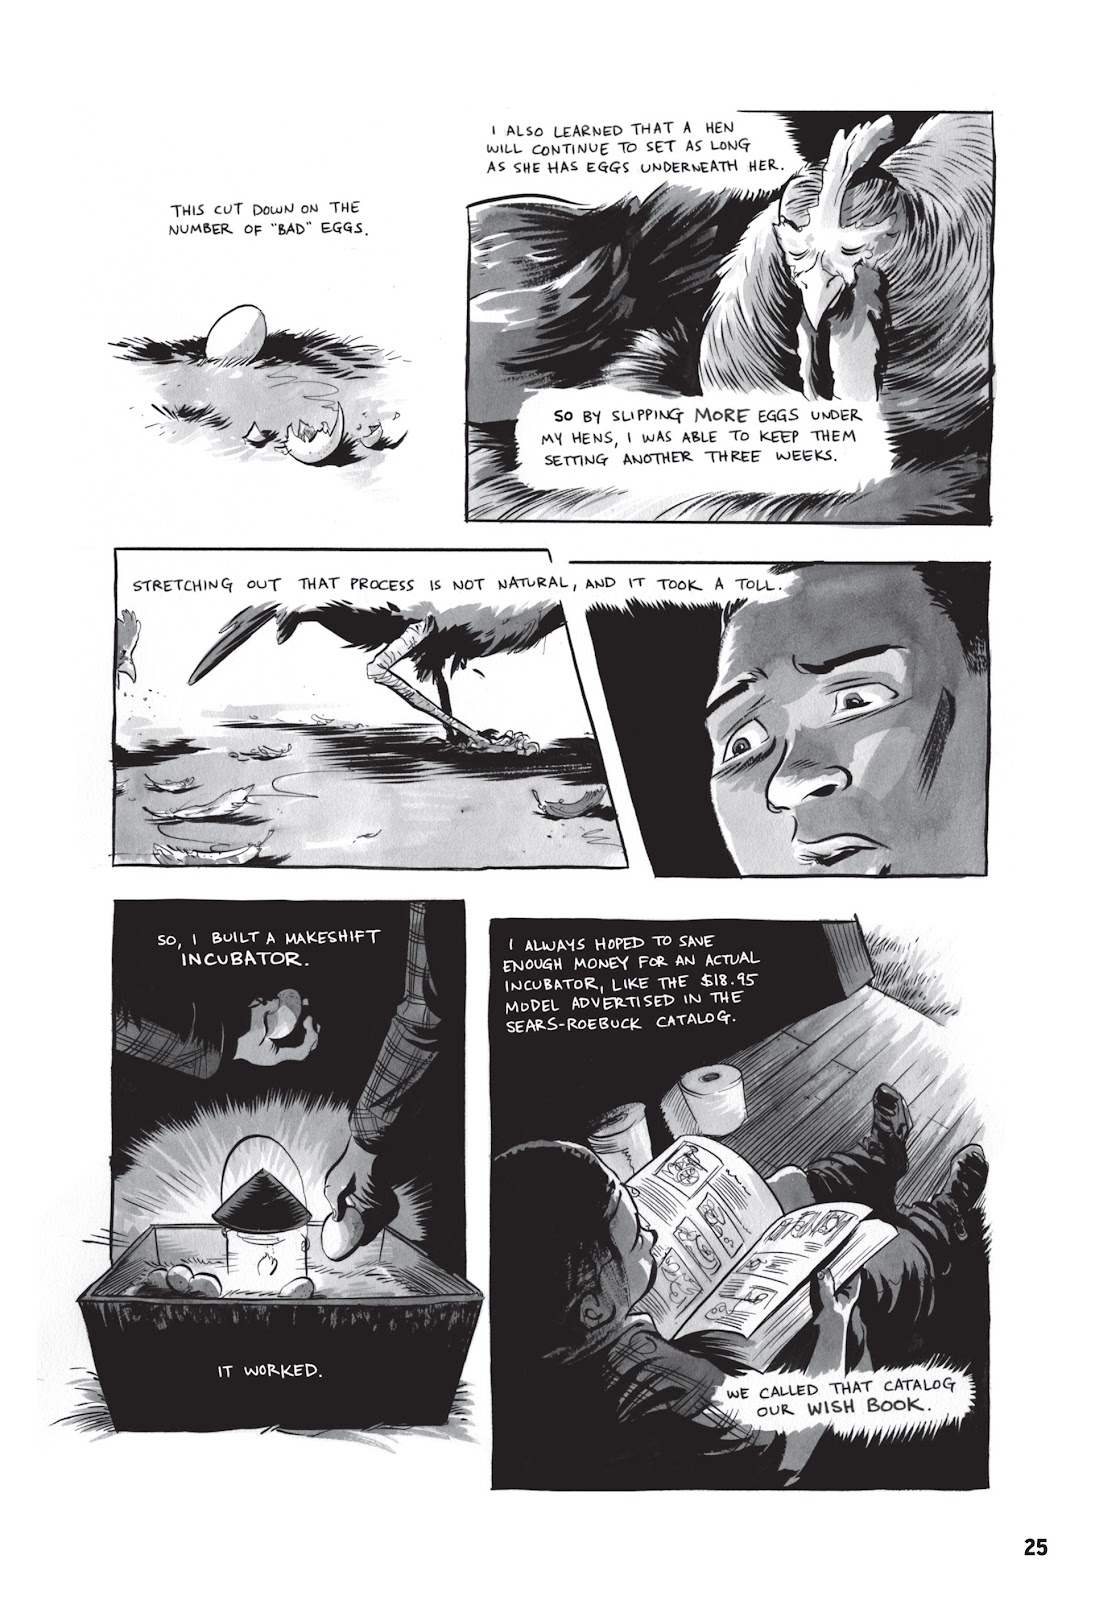 March 1 Page 22